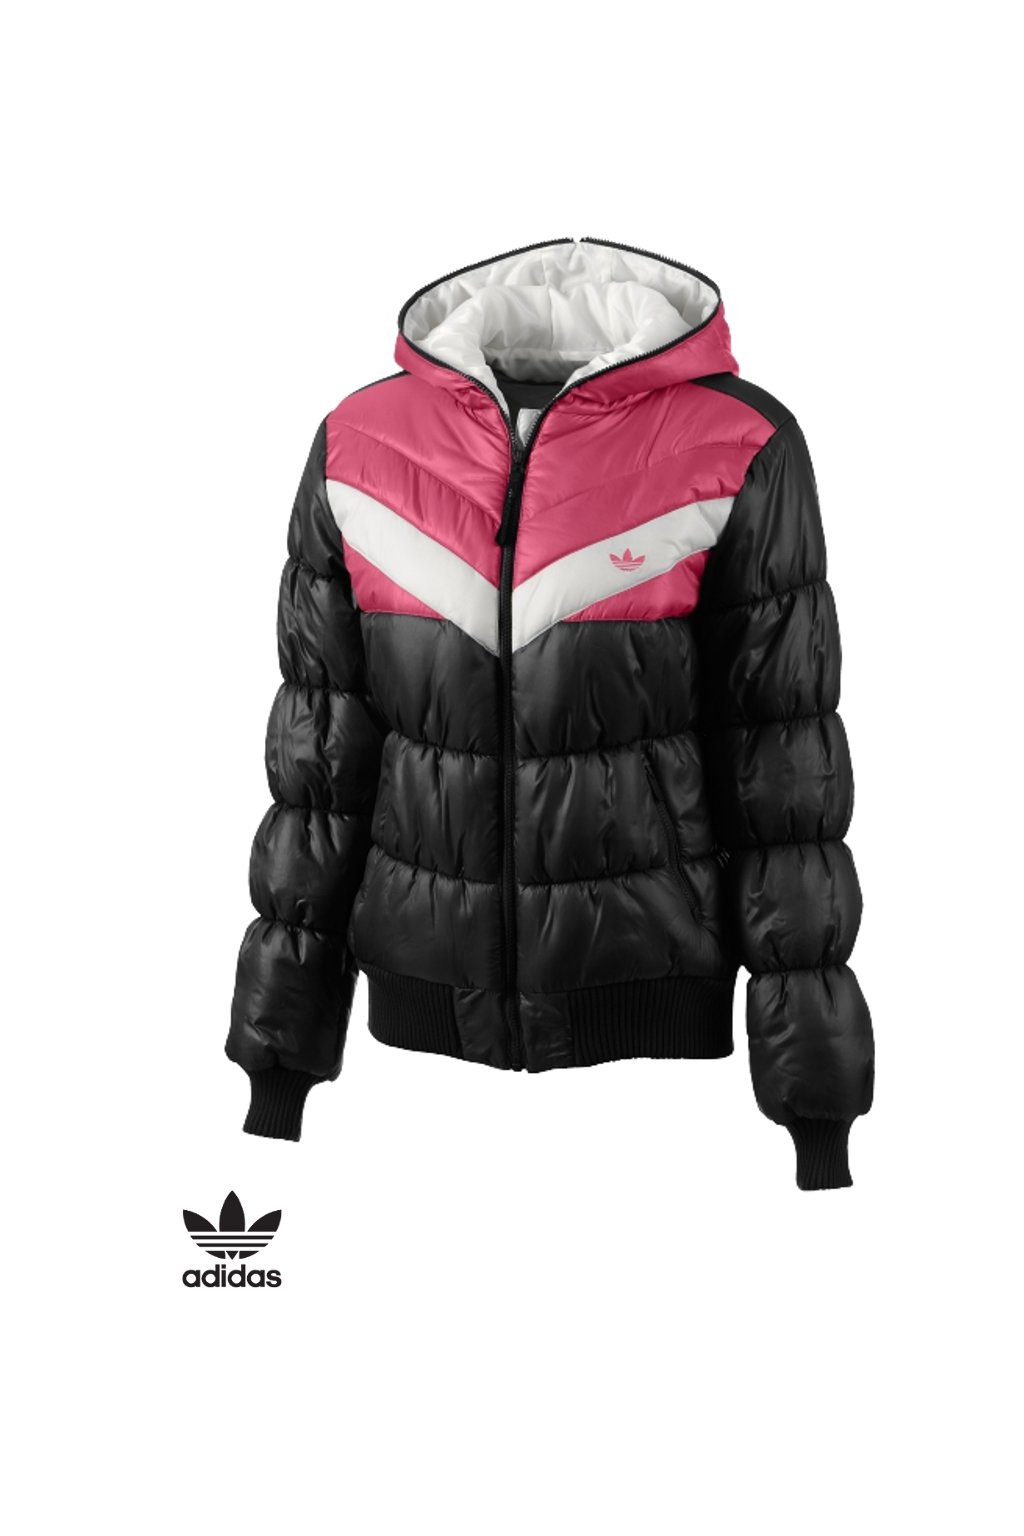 g77416 damska bunda adidas padded colorado jacket